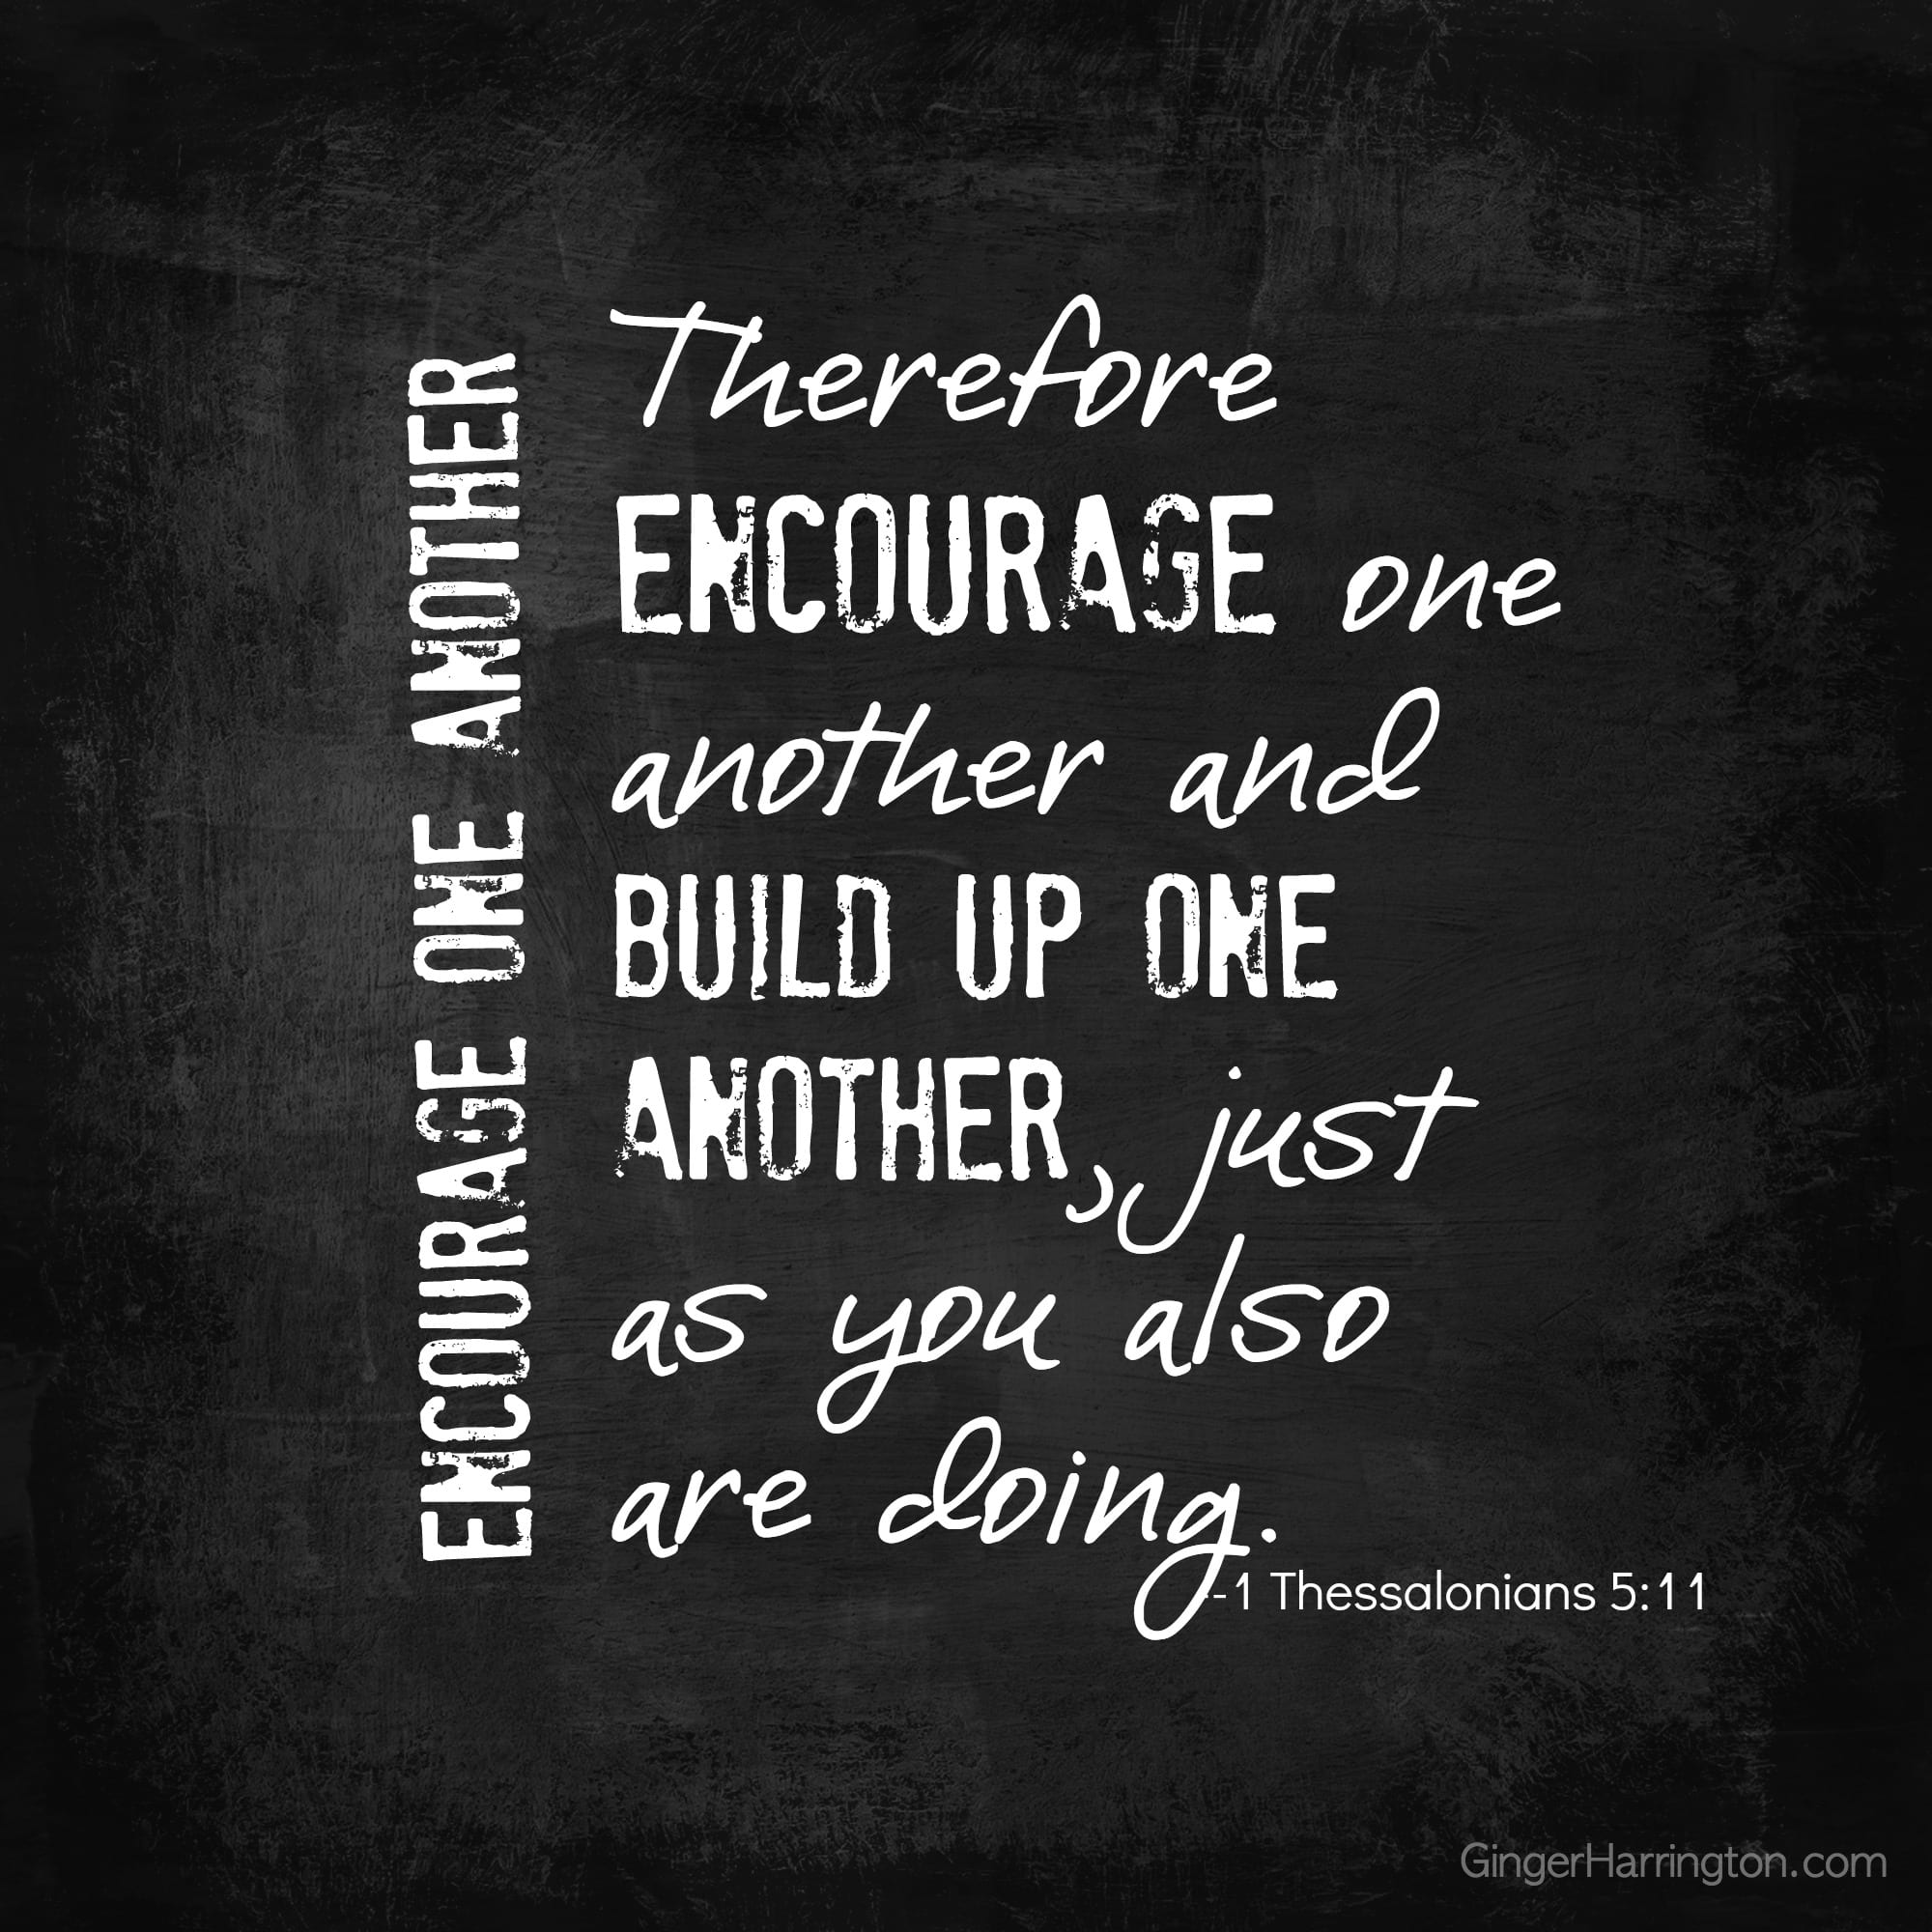 Encouragement, love one another, 1 Thessalonians 5:11, relationships, body of Christ